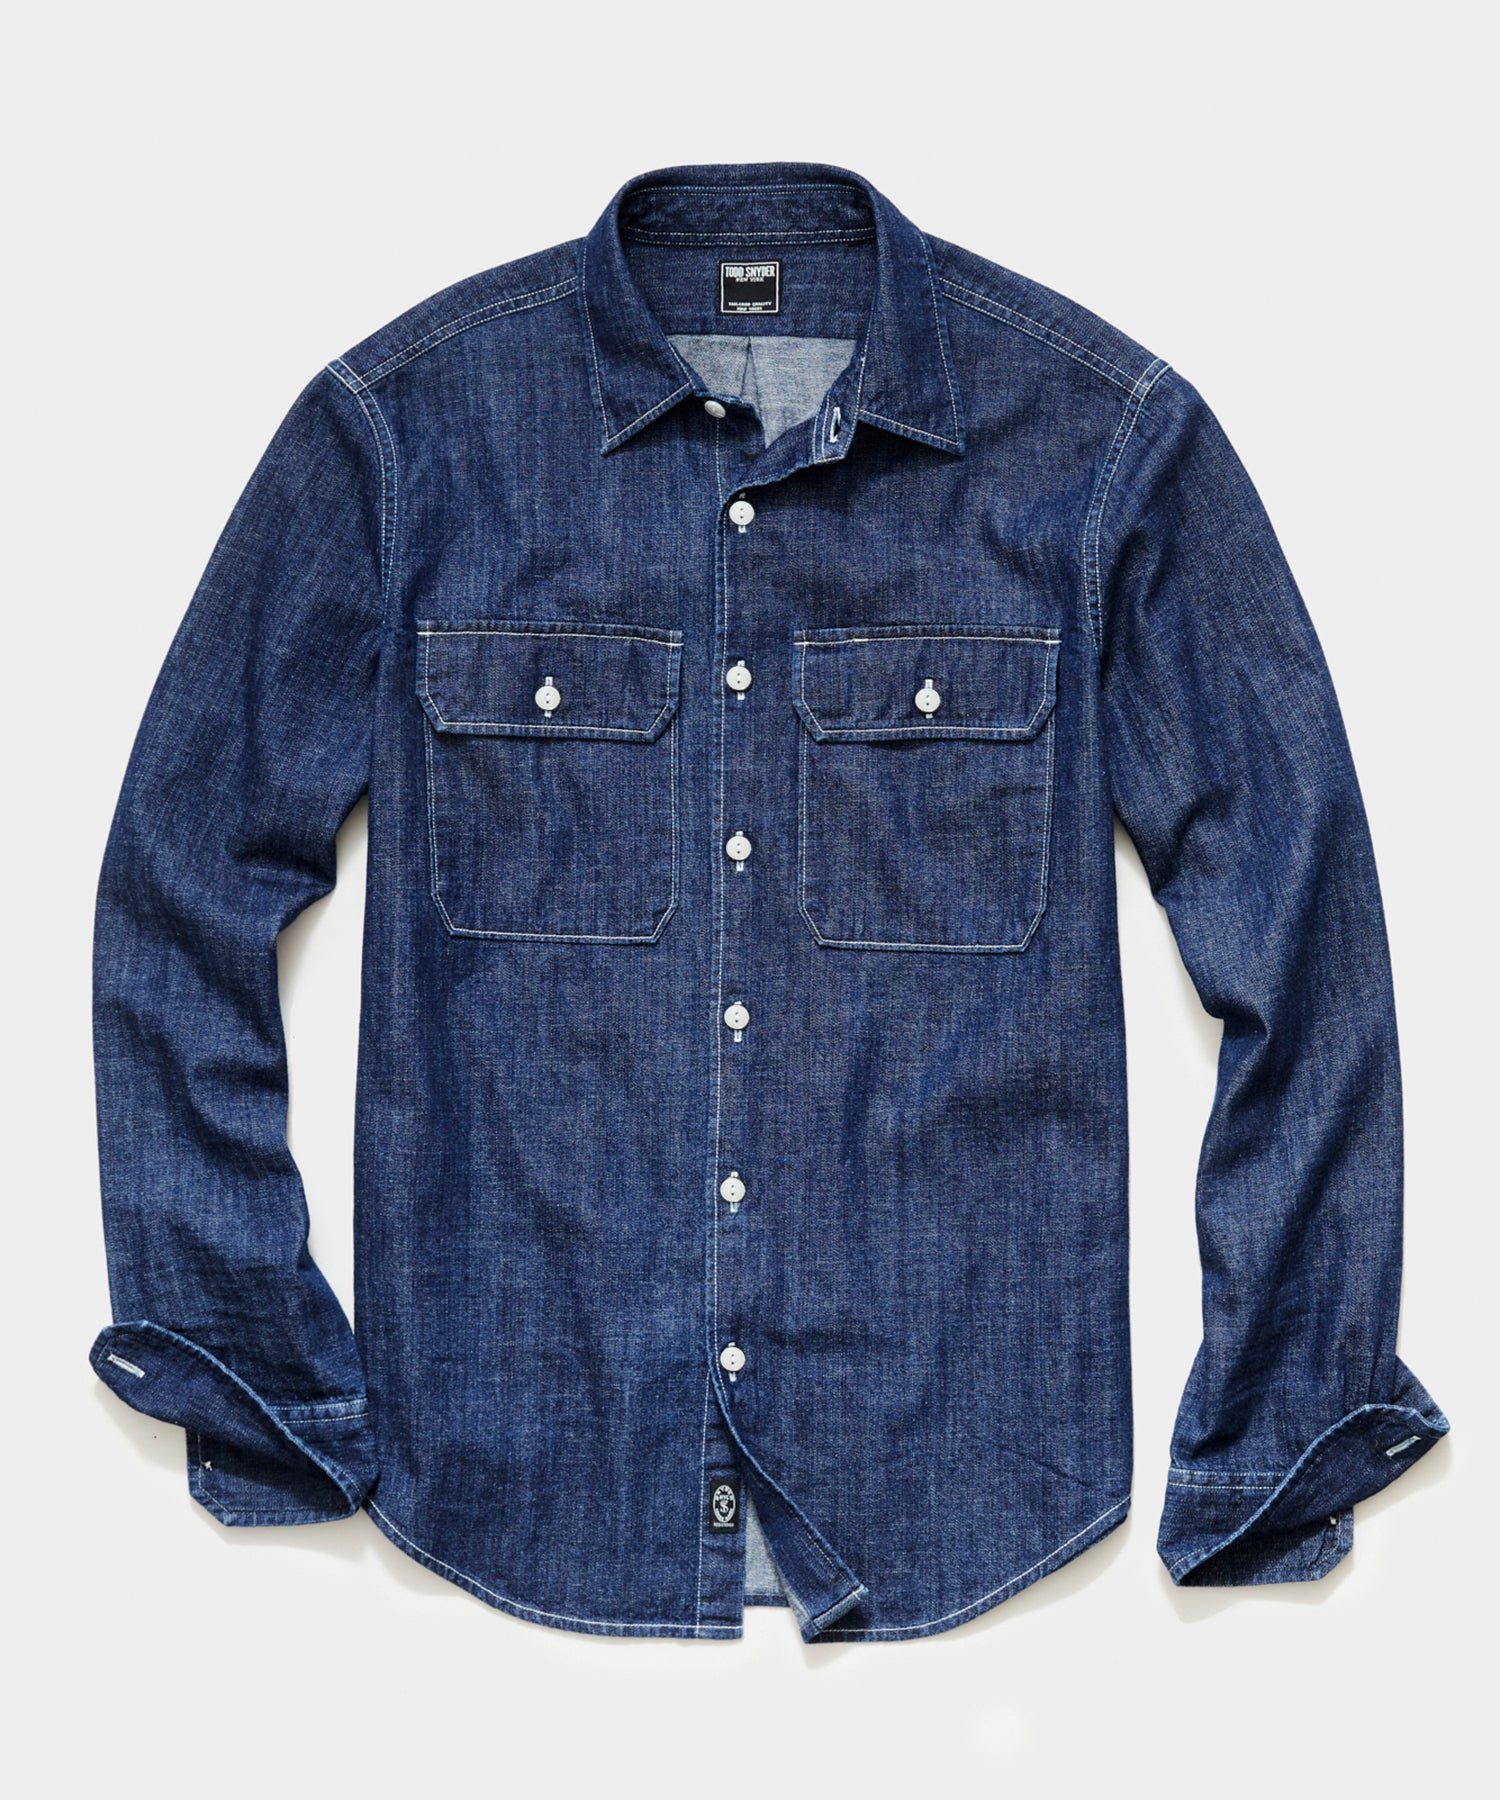 Italian Two Pocket Utility Long Sleeve Shirt in Denim